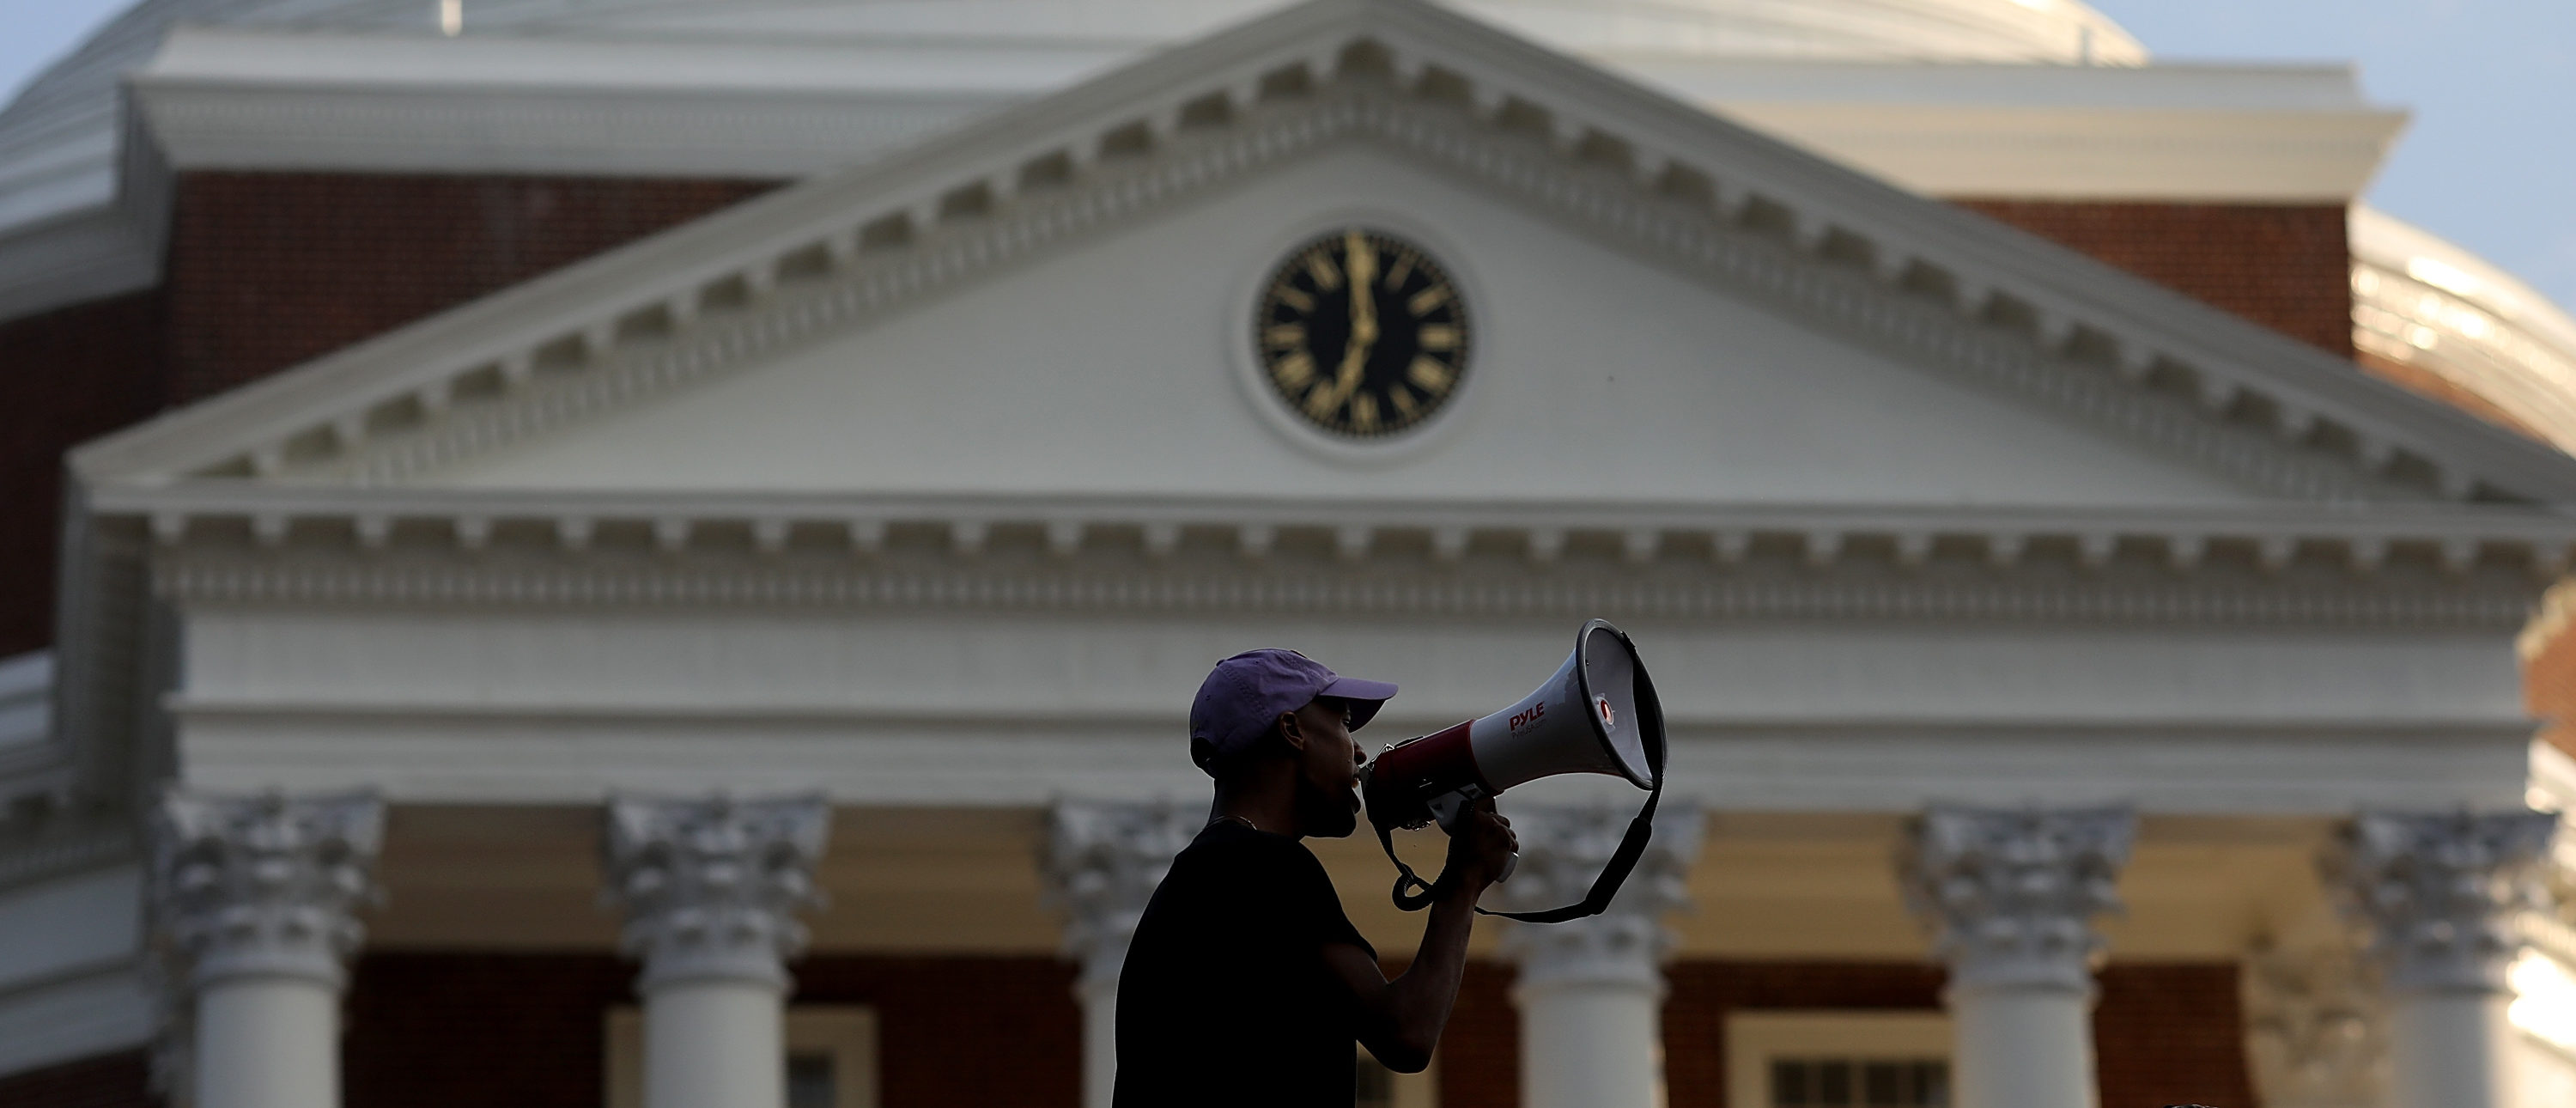 CHARLOTTESVILLE, VA - AUGUST 11: Protesters with the group Students Act Against White Supremacy speak on the campus of the University of Virginia during an event marking the one year anniversary of a deadly clash between white supremacists and counter protesters August 11, 2018 in Charlottesville, Virginia. Charlottesville has been declared in a state of emergency by Virginia Gov. Ralph Northam as the city braces for the one year anniversary of the deadly clash between white supremacist forces and counter protesters over the potential removal of Confederate statues of Robert E. Lee and Stonewall Jackson. A ÒUnite the RightÓ rally featuring some of the same groups is planned for tomorrow in Washington, DC. (Photo by Win McNamee/Getty Images)